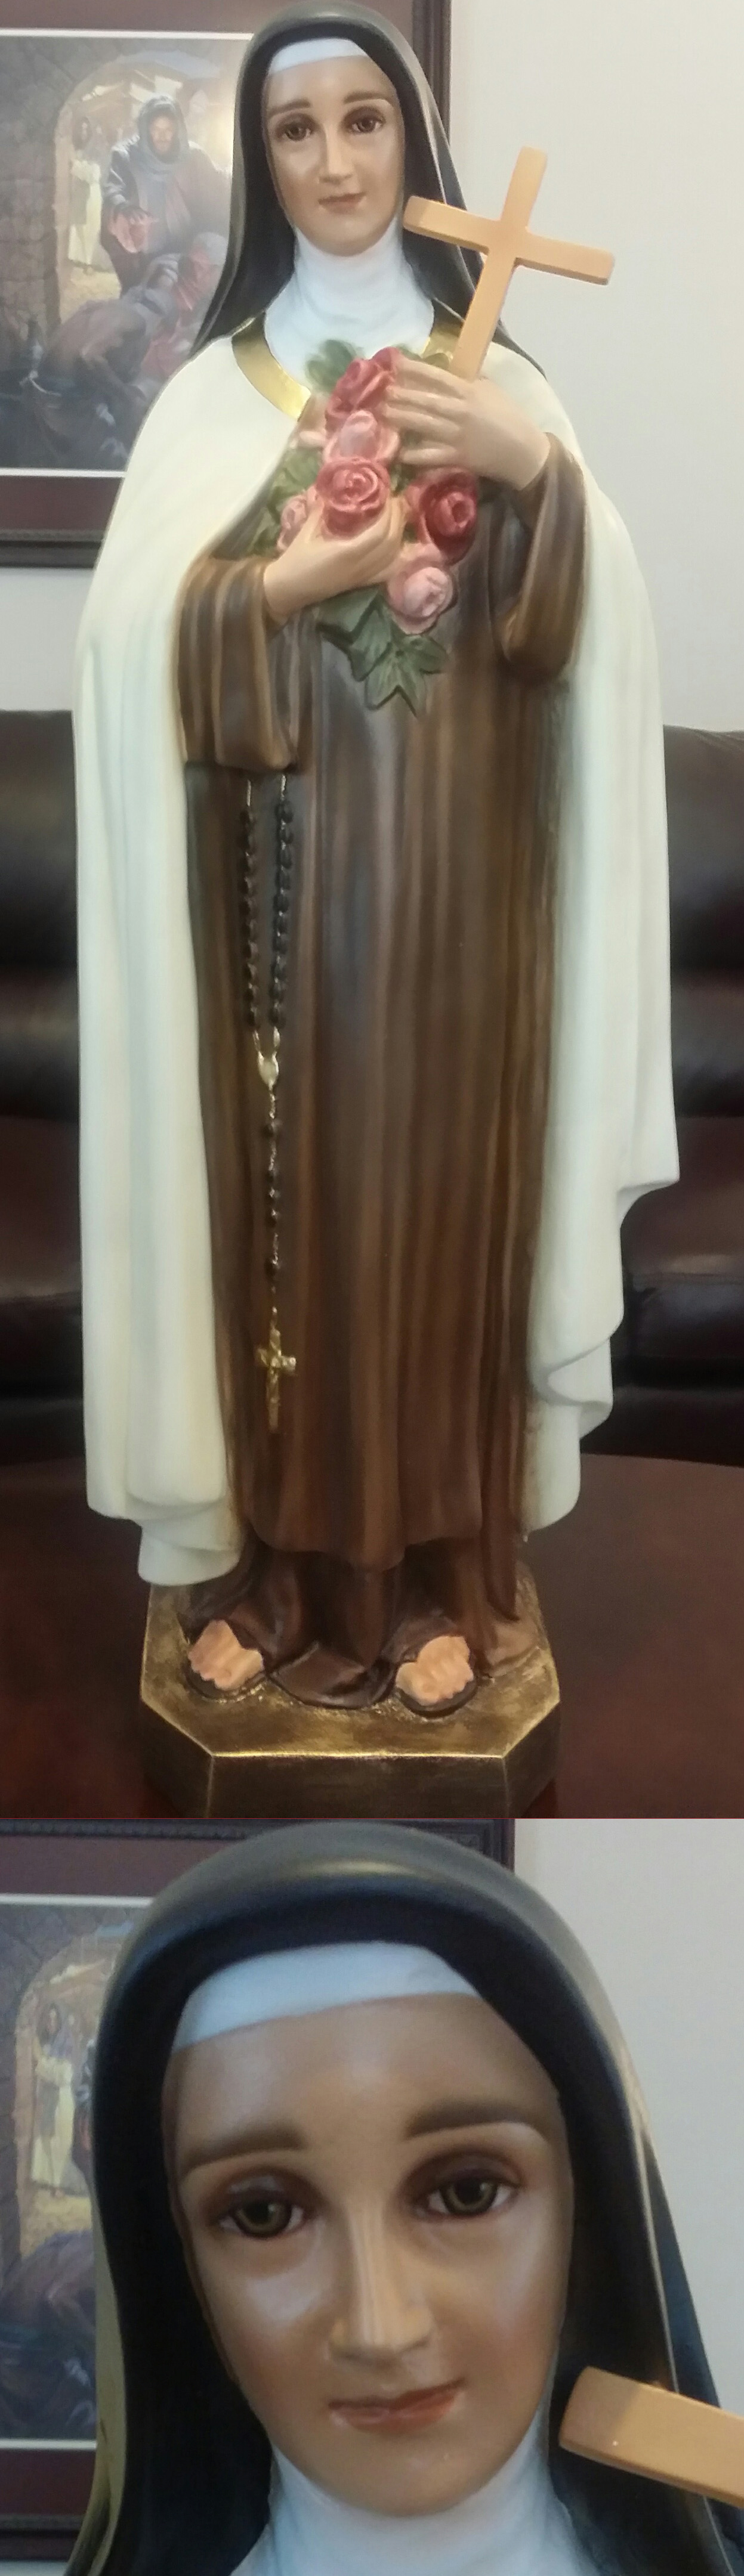 St Therese Statue The Little Flower 36 Inch Indoor Use ly Made of